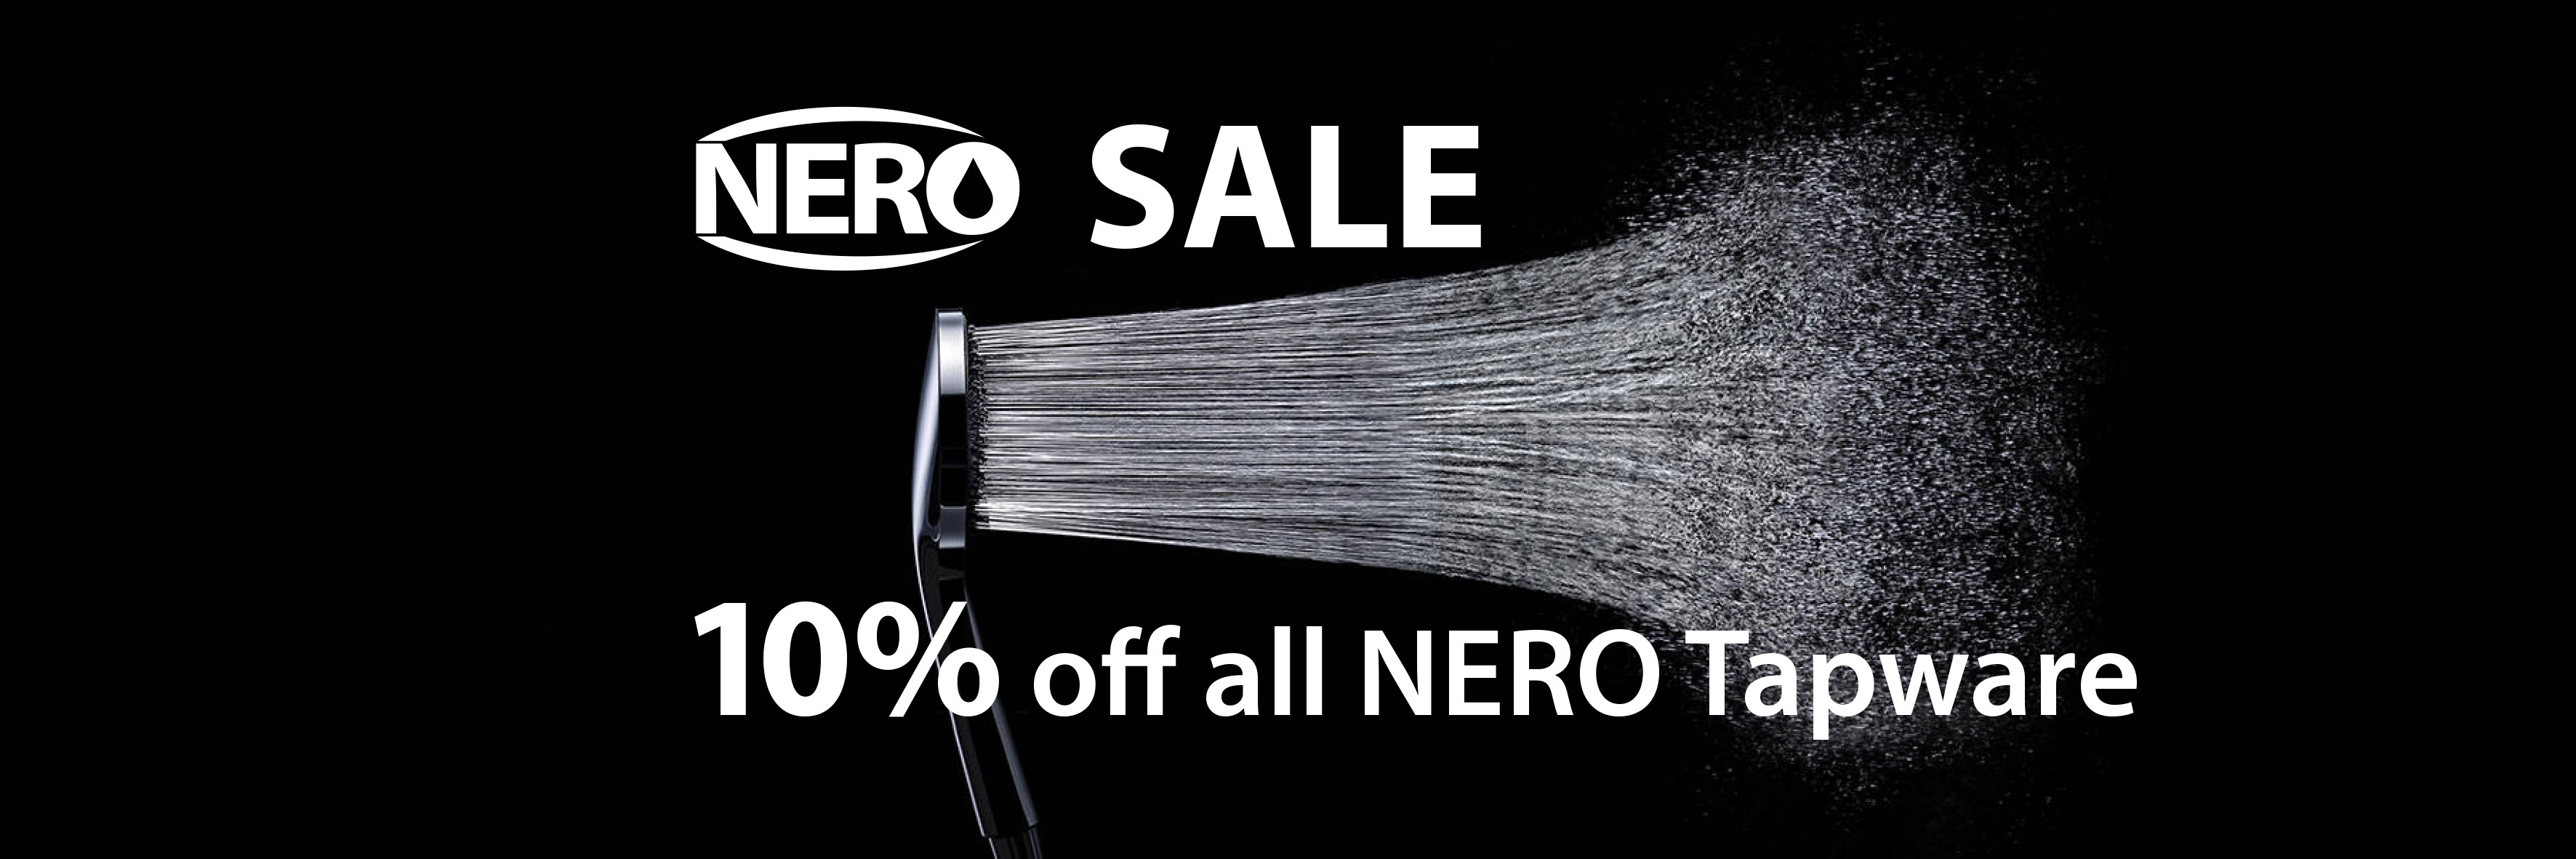 website-slider-nero-10-percent-off.jpg